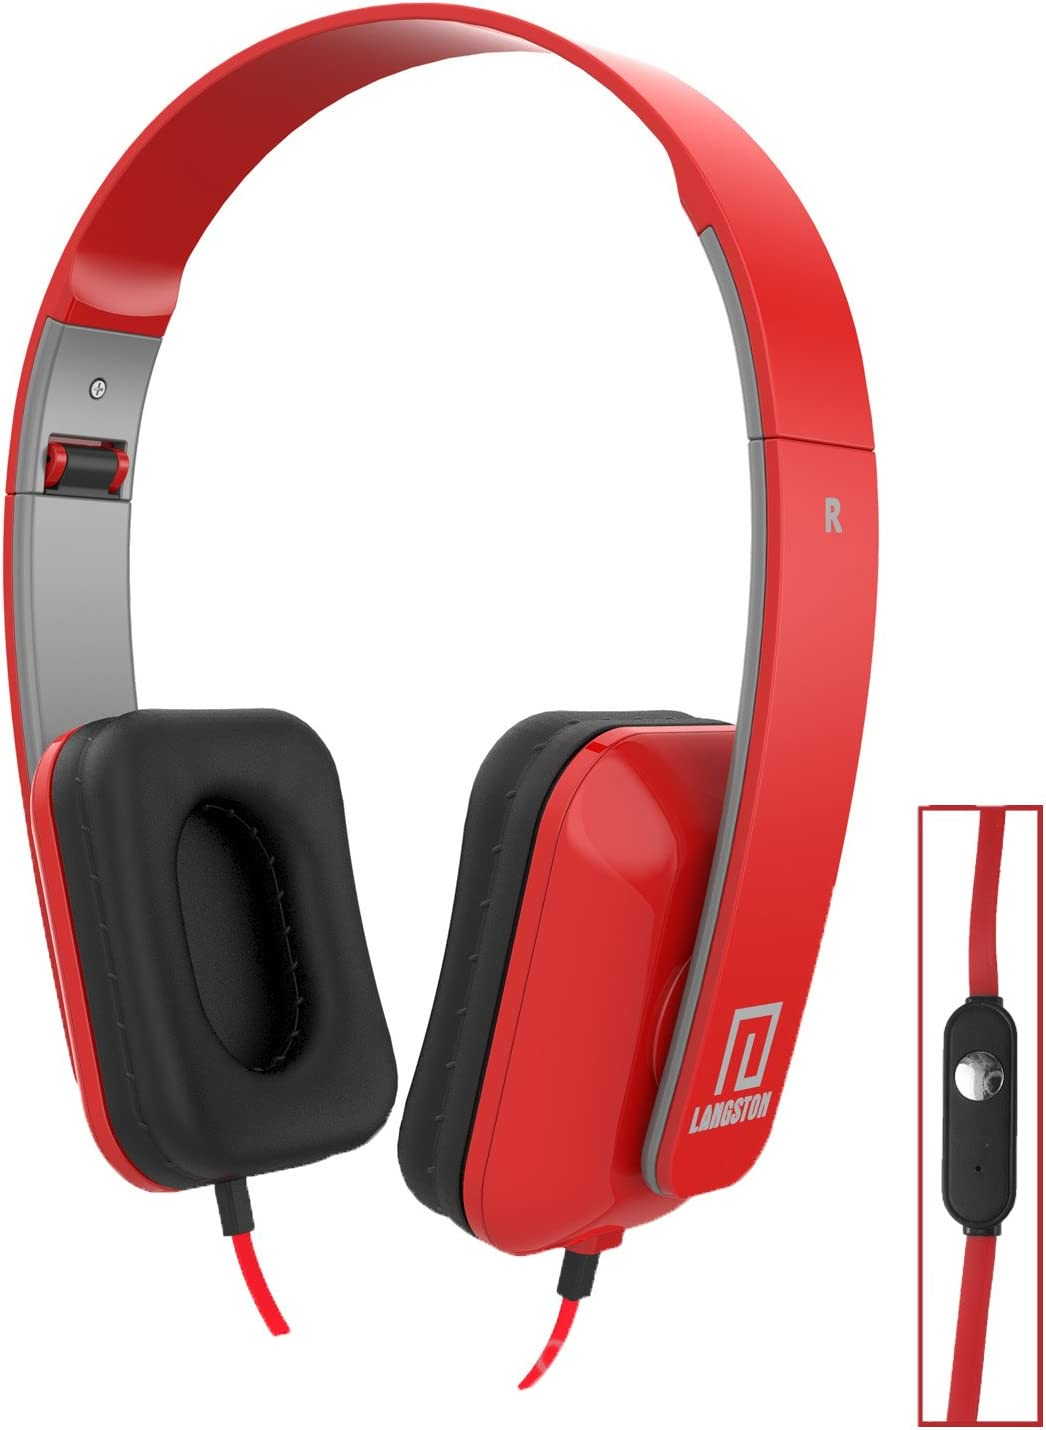 Langston ® Archos 50 Saphir / Archos 55 Diamond Selfie Red Deep Bass Foldable HD Headphones (iM-8) with Microphone and Remote Red Langston DeepBass iM-8